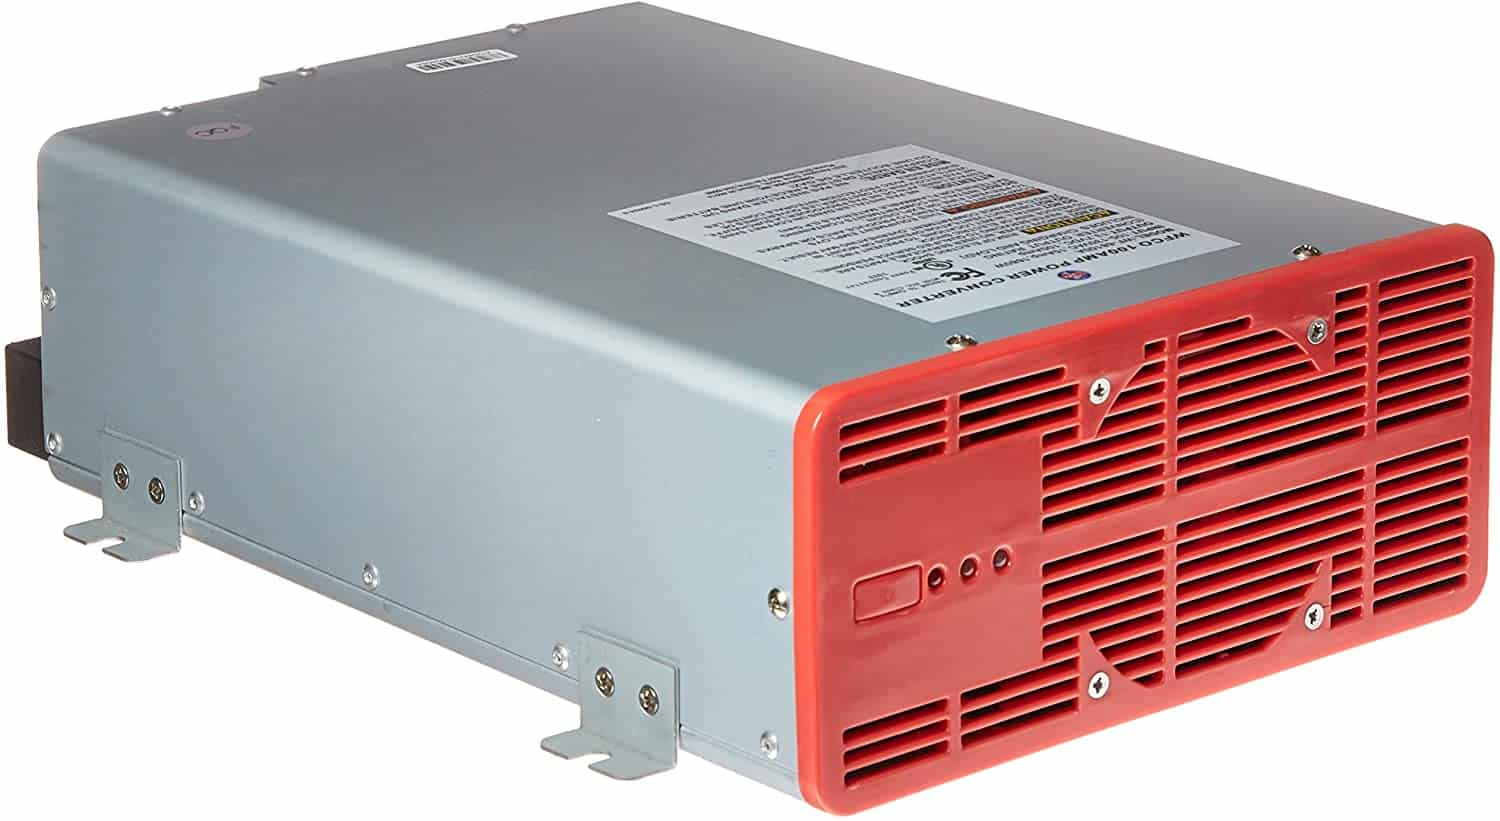 WFCO Wf-68100A RV Converter Charger